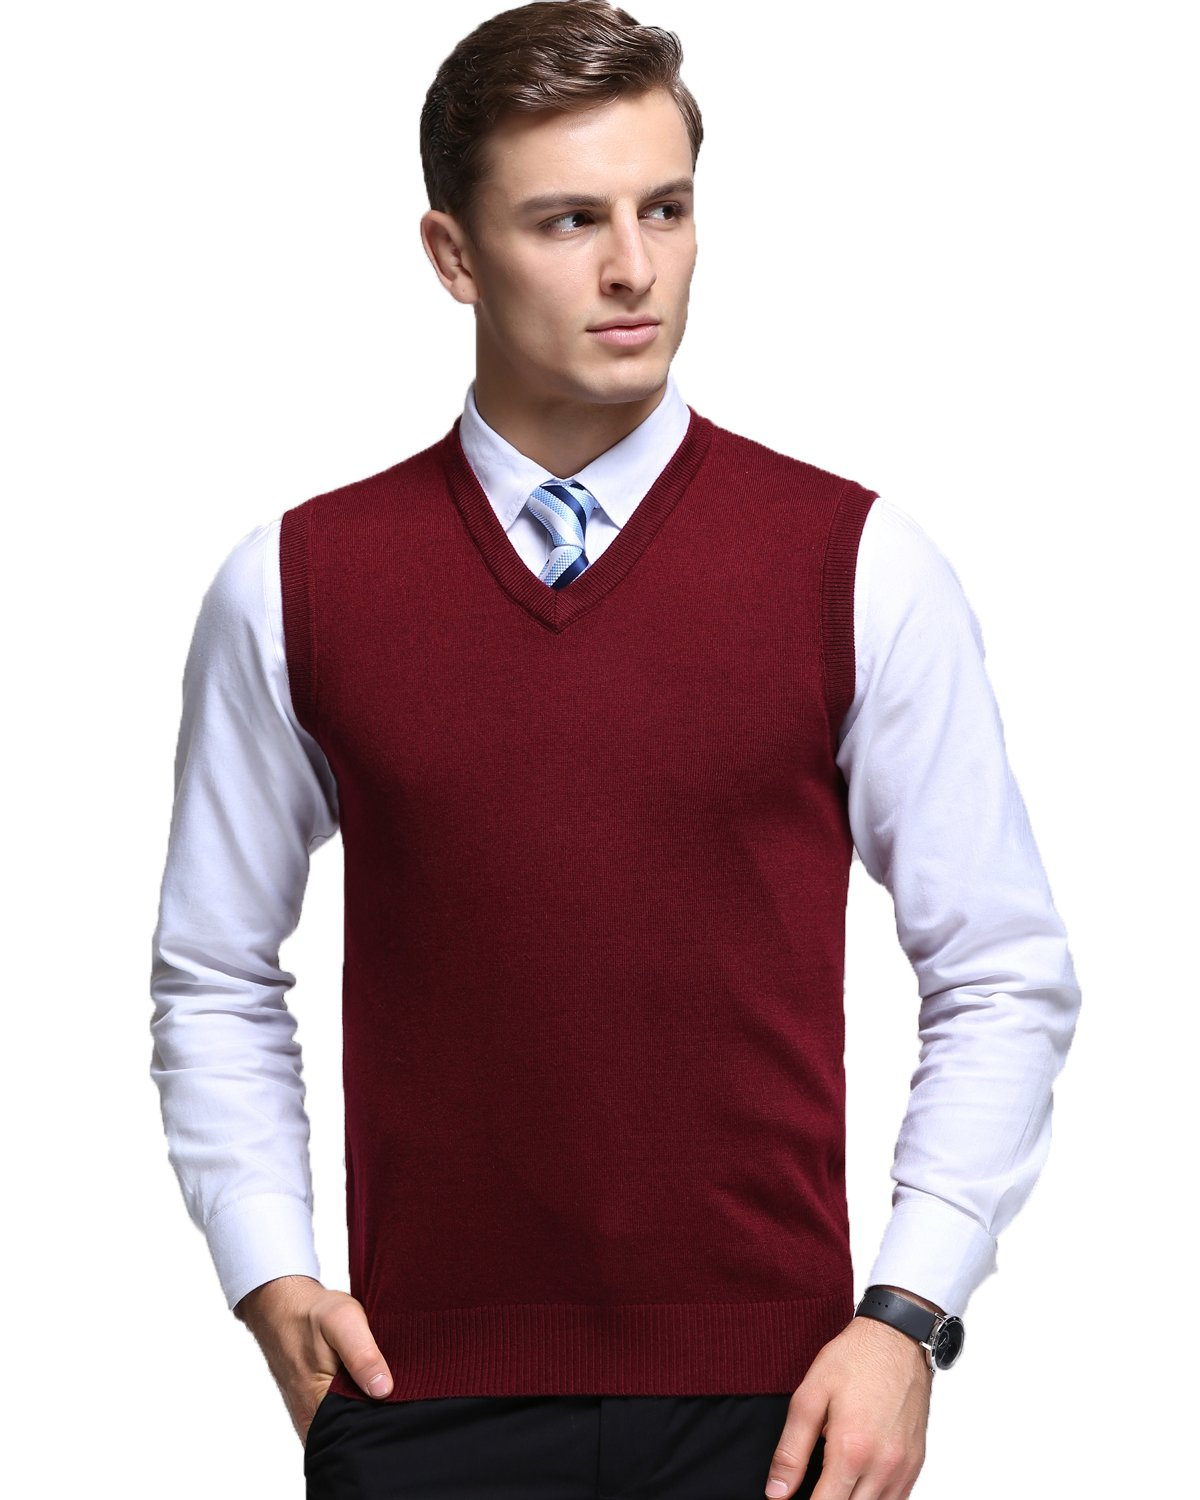 Kinlonsair Mens Casual Slim Fit Solid Lightweight V-Neck Sweater Vest,Red,Large (US) by Kinlonsair